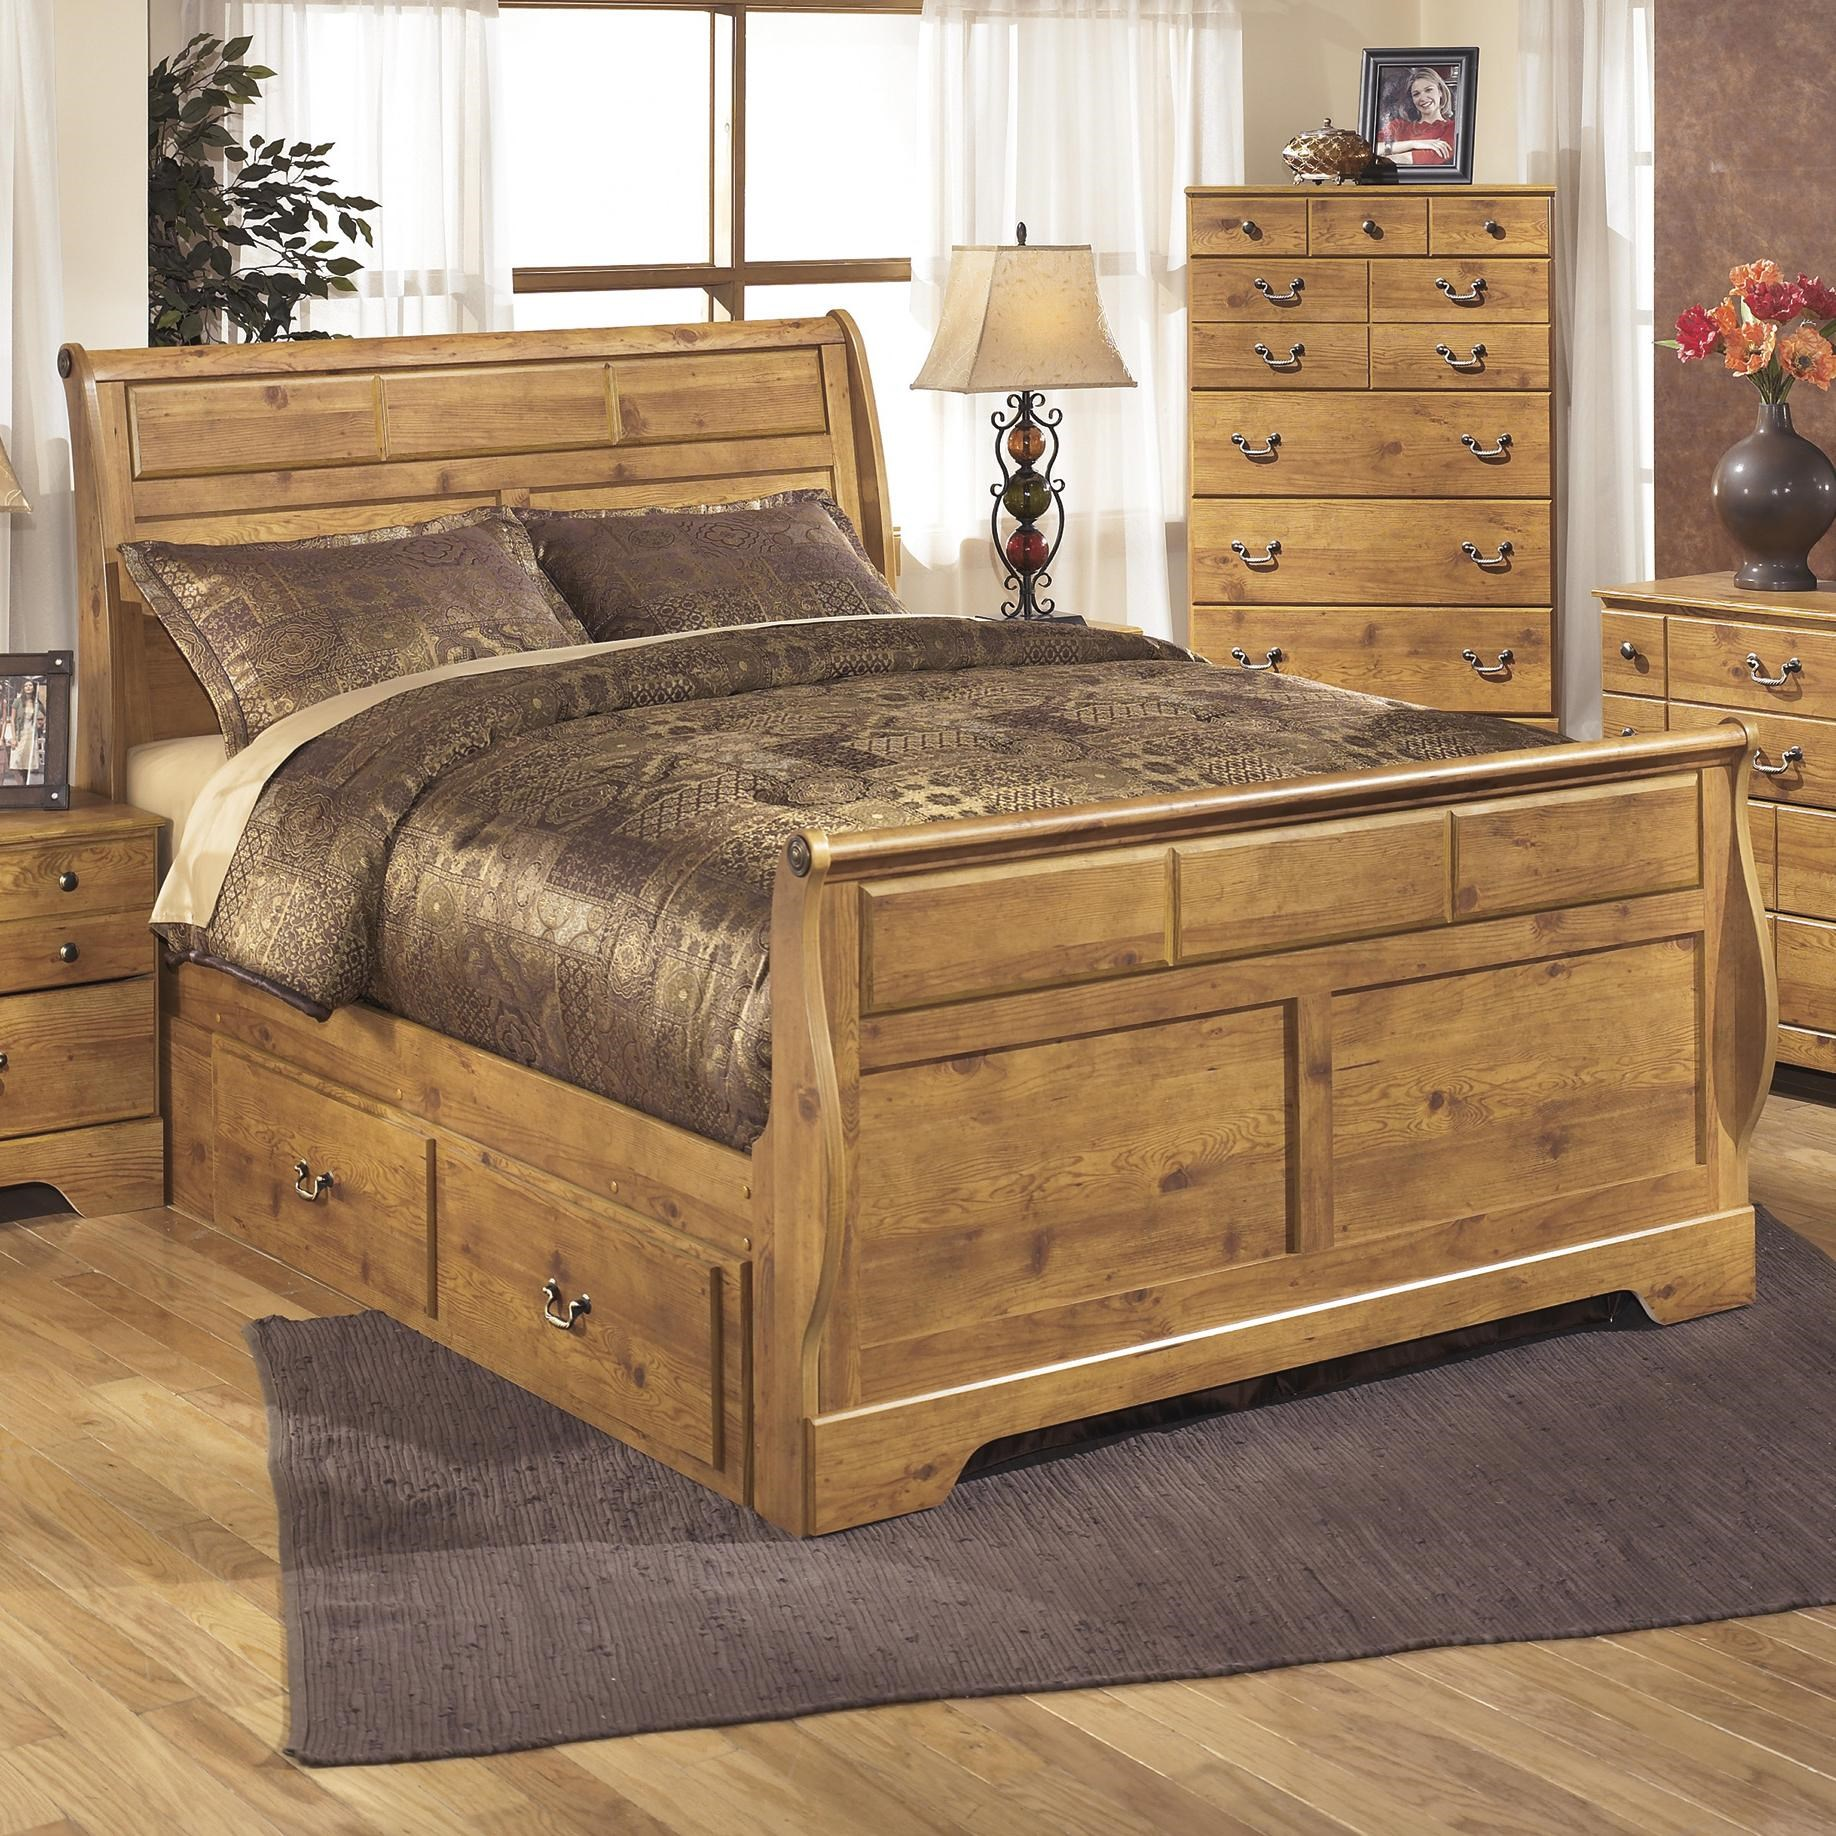 Signature Design by Ashley Bittersweet Queen Sleigh Bed with Under Storage